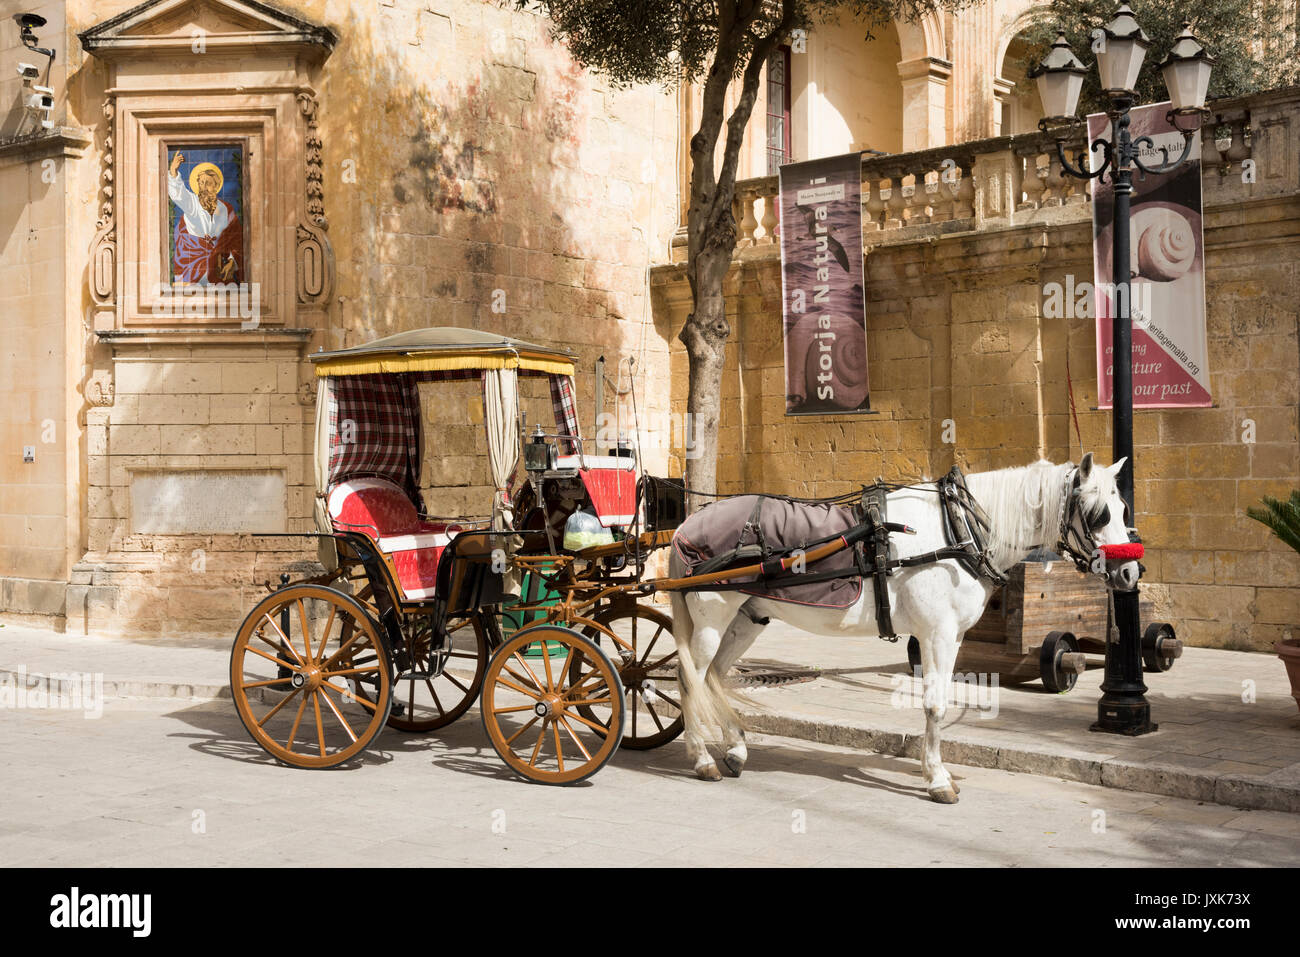 A tourist horse and cart carriage waits for passengers for a trip in Mdina Malta - Stock Image